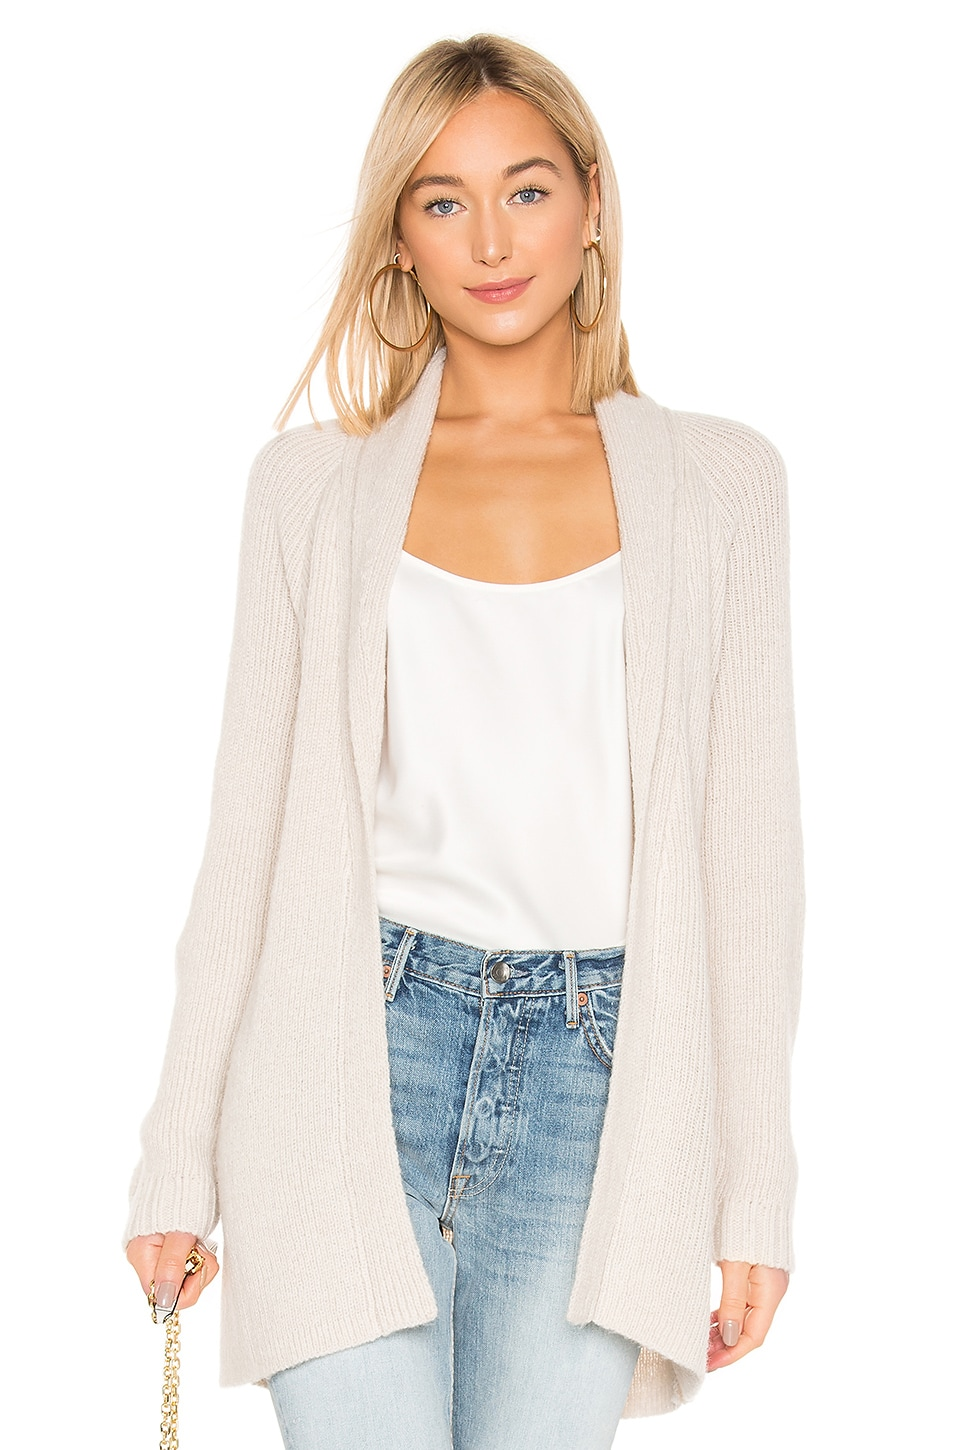 L'Academie Whitney Cardigan in Sand